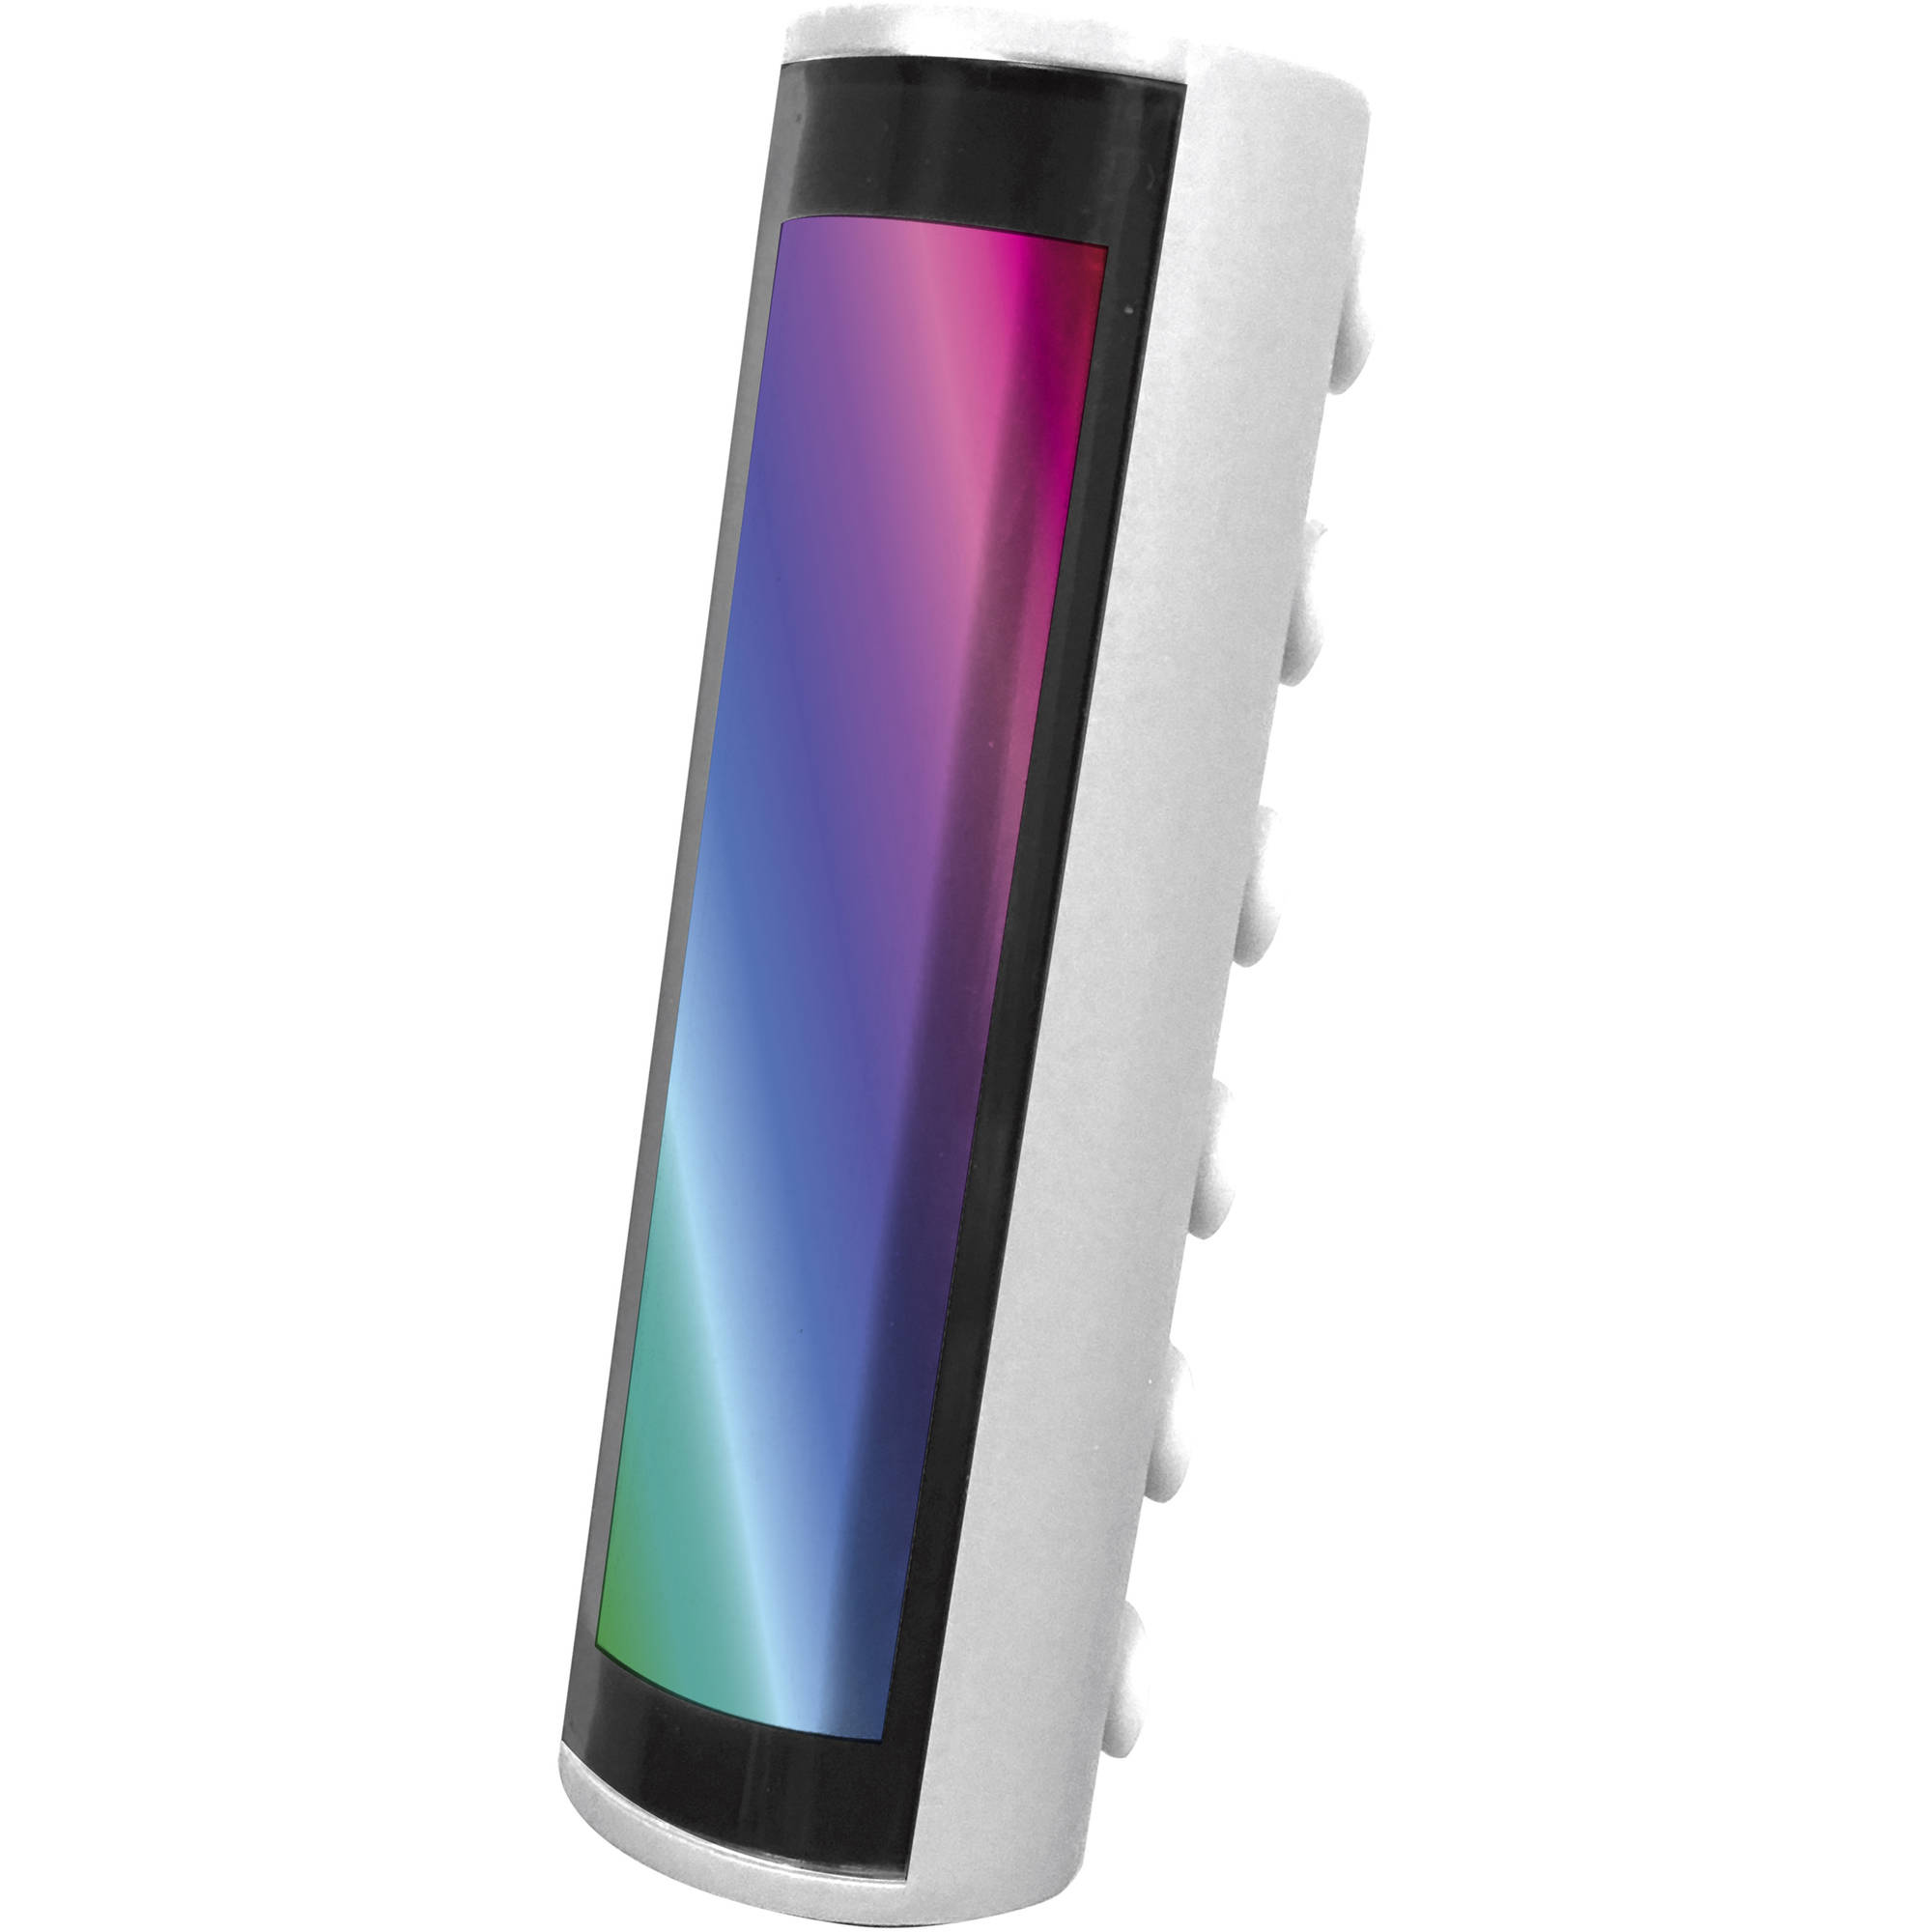 Light-Up Portable Charger 2,000mAh External USB Battery Bank by iHip